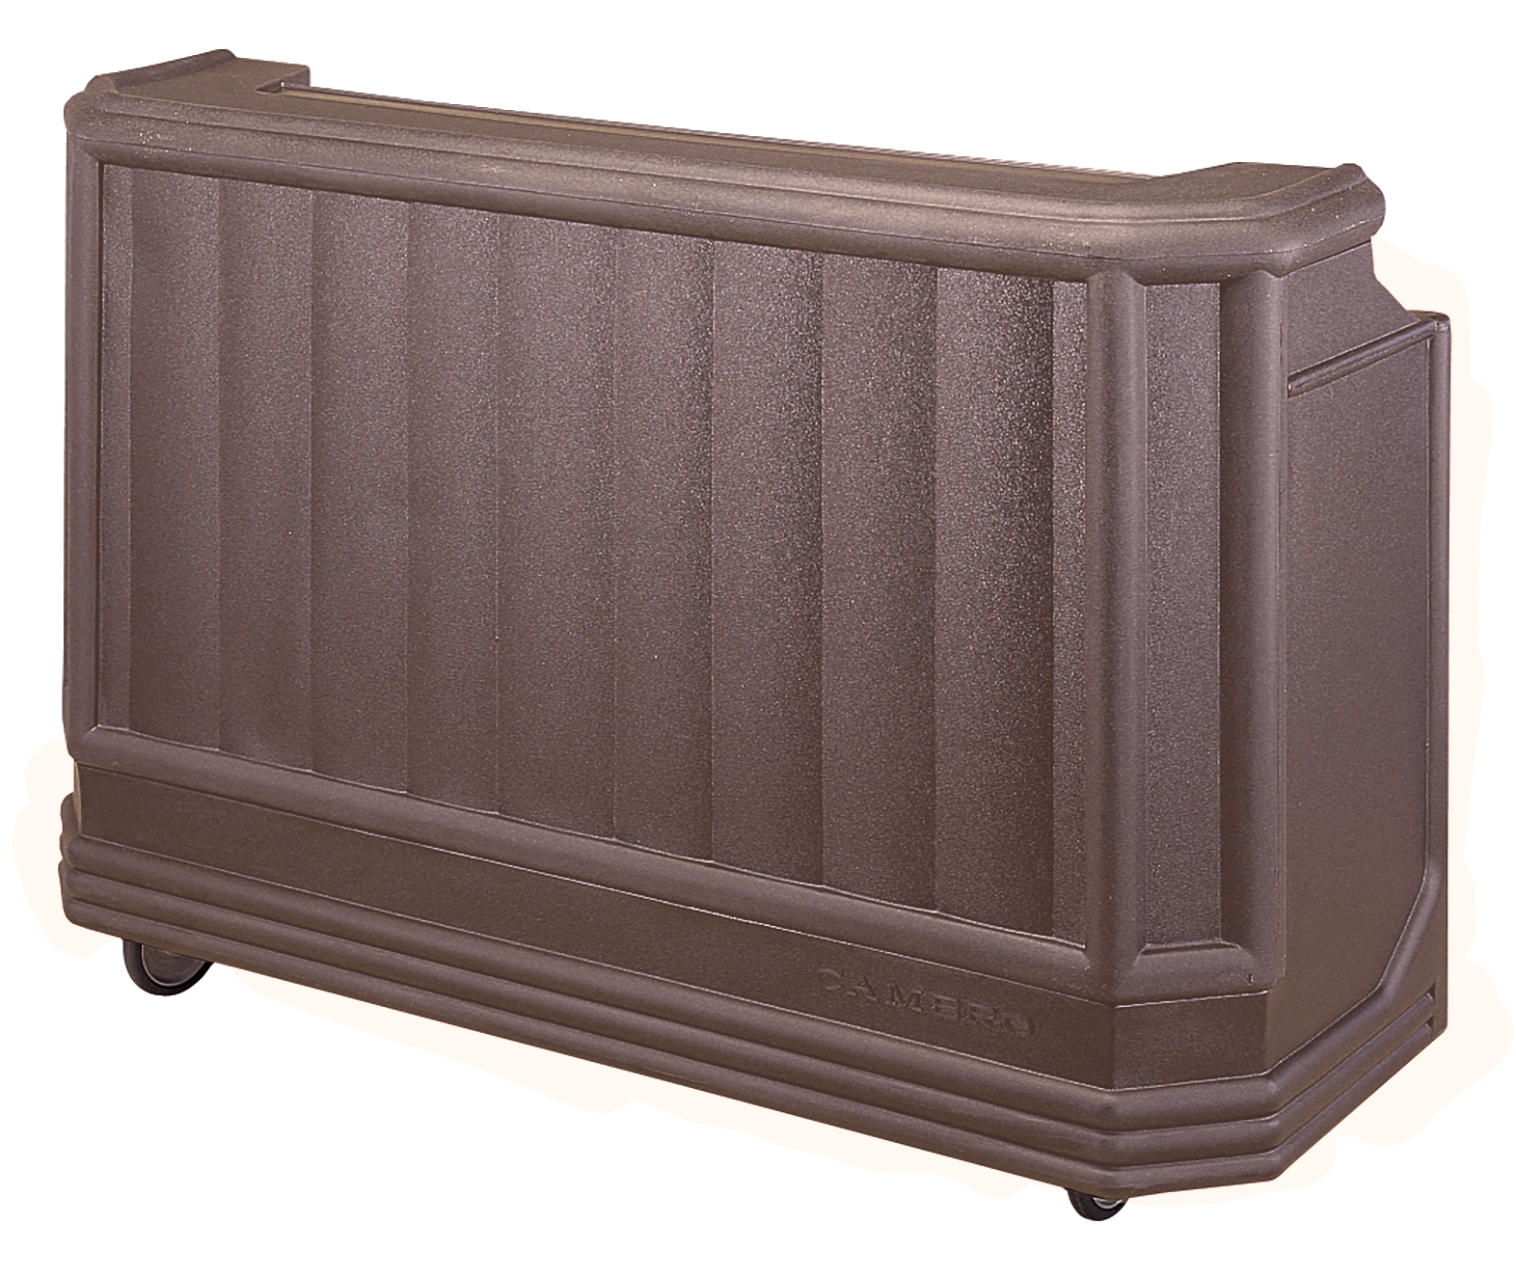 Cambro BAR730PMT194 portable bar